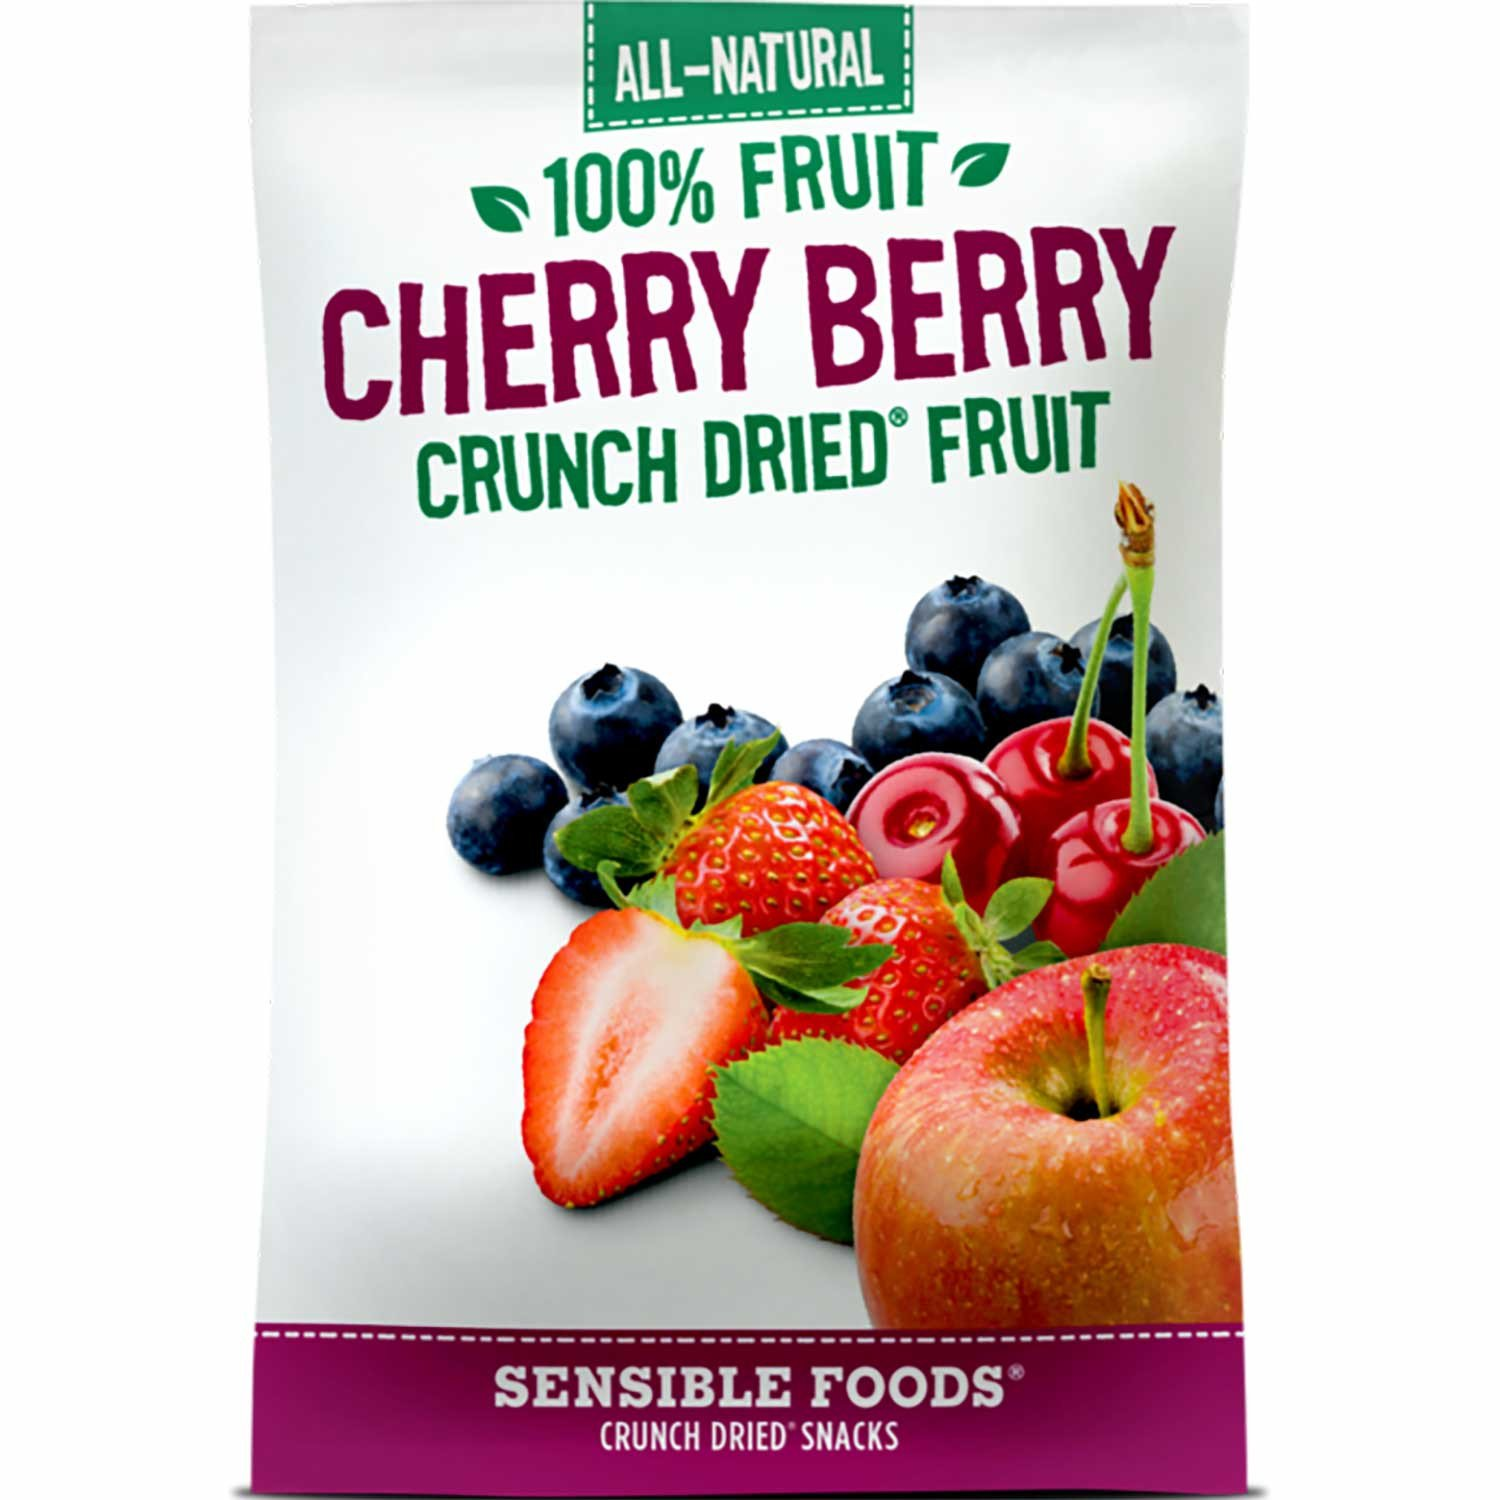 Sensible Foods All-Natural 100% Fruit Cherry Berry Crunch Dried Fruit, 10g